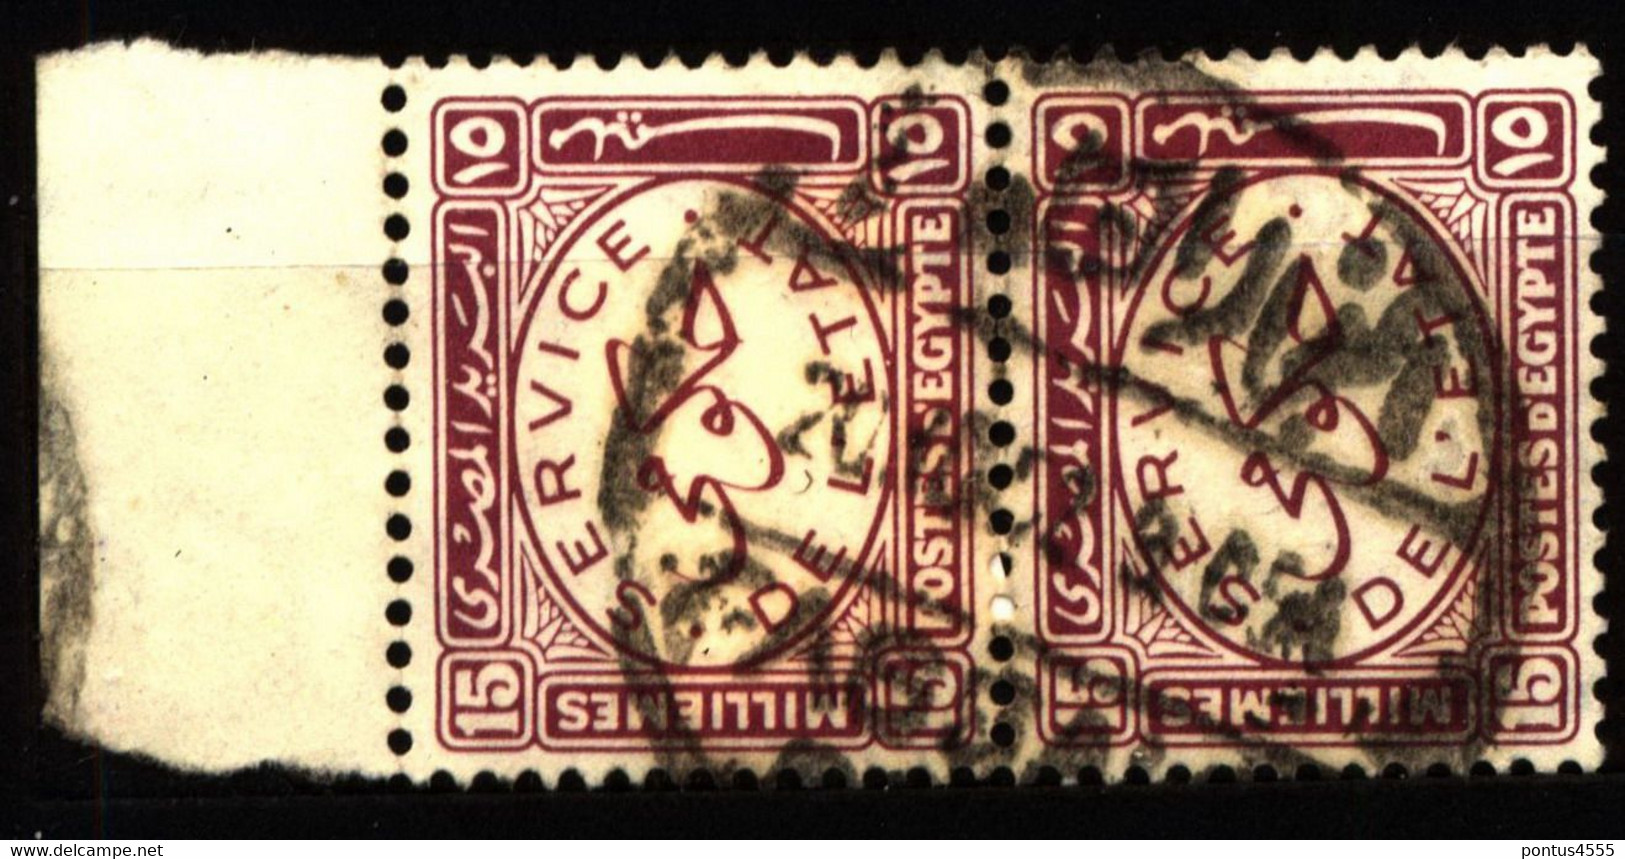 Egypt 1938 Mi D57 Official Stamps - Used Stamps